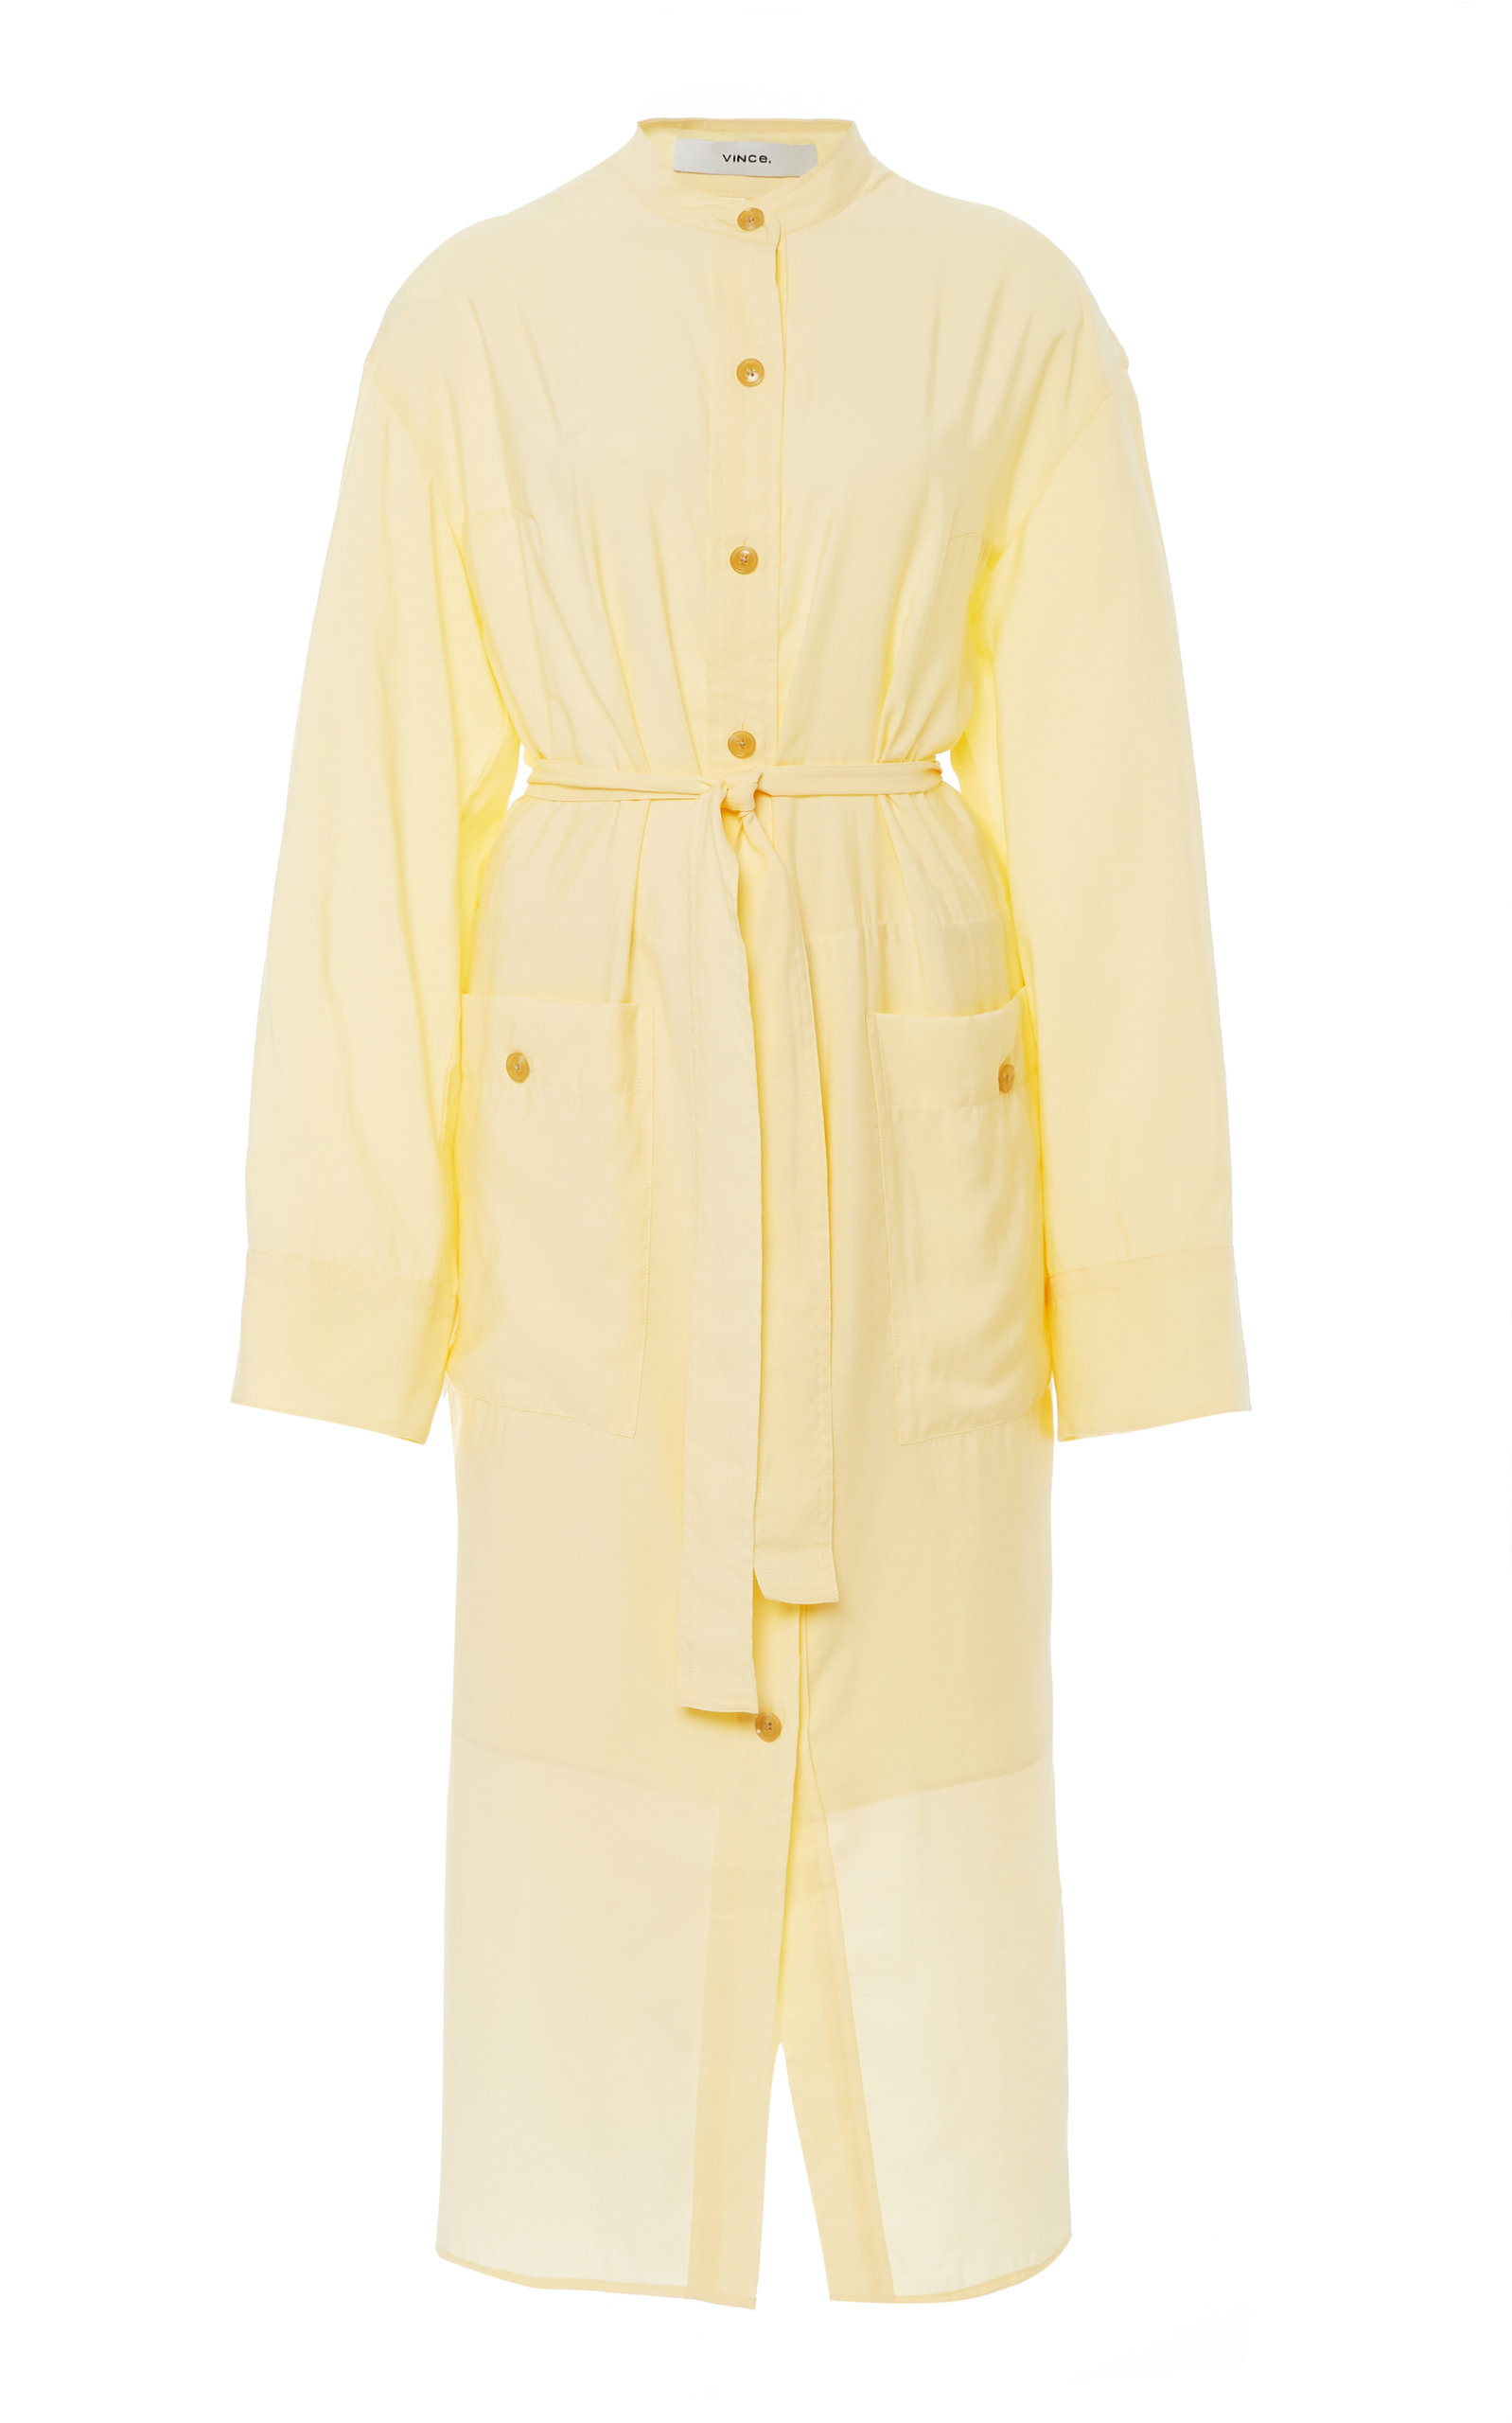 Buy Vince Lightweight Button-Down Poplin Maxi Dress online, shop Vince at the best price